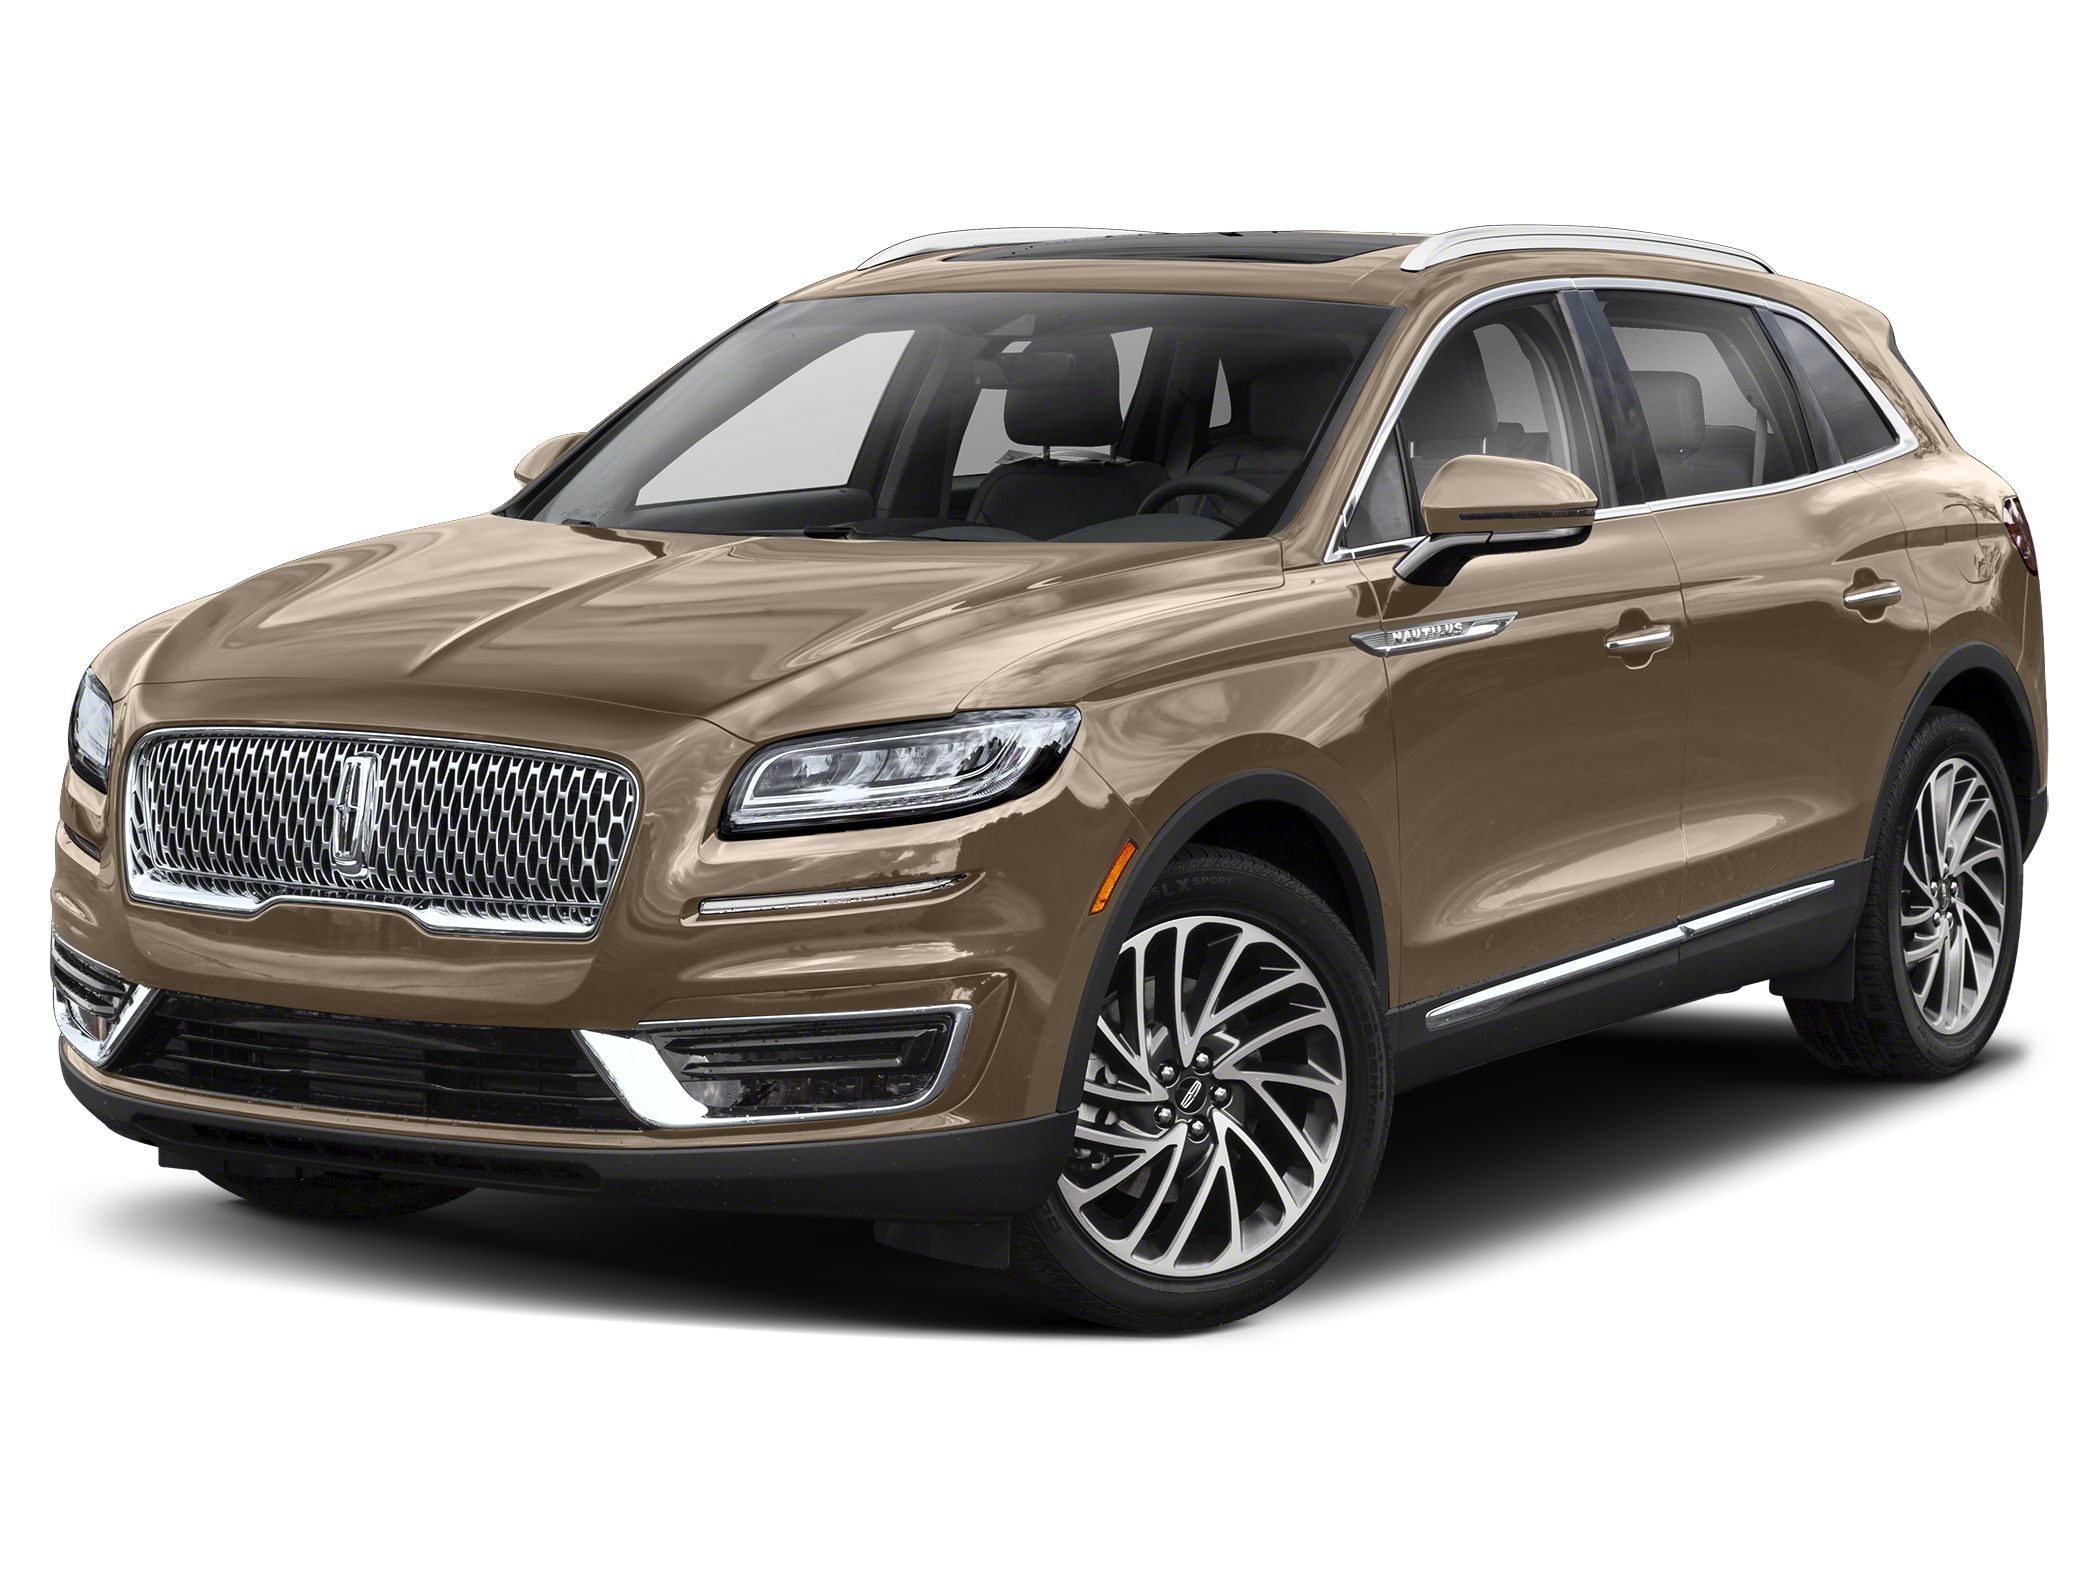 New 2020 Lincoln Nautilus For Sale At Maplecrest Ford Lincoln Vin 2lmpj8k90lbl00596